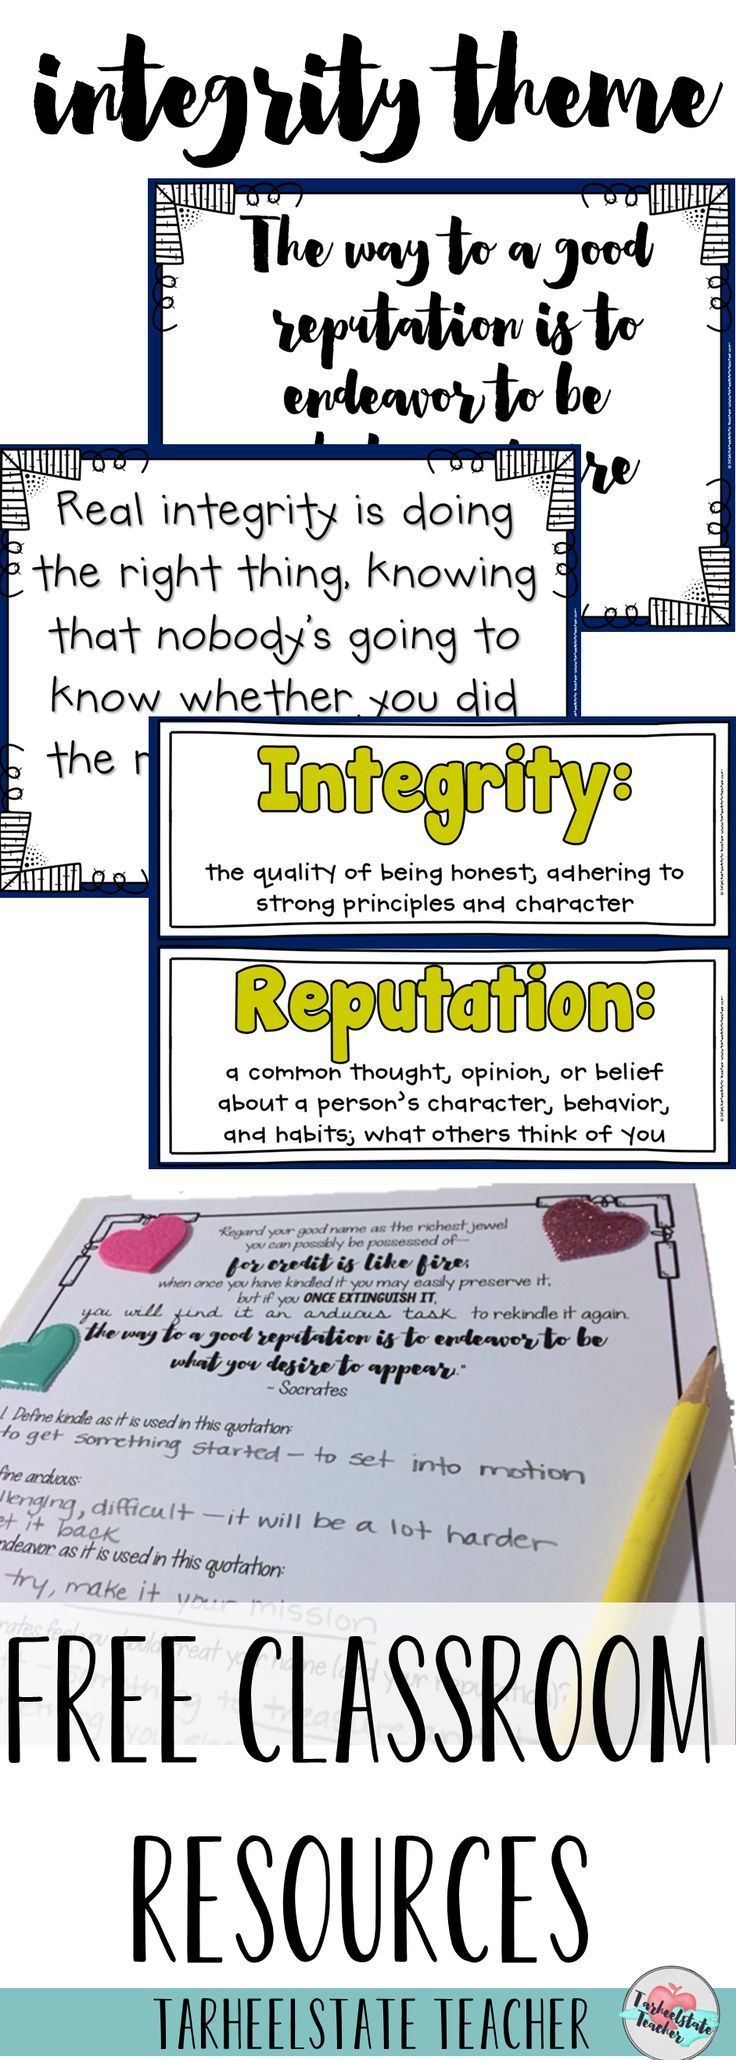 How to Build Character Through Integrity pictures